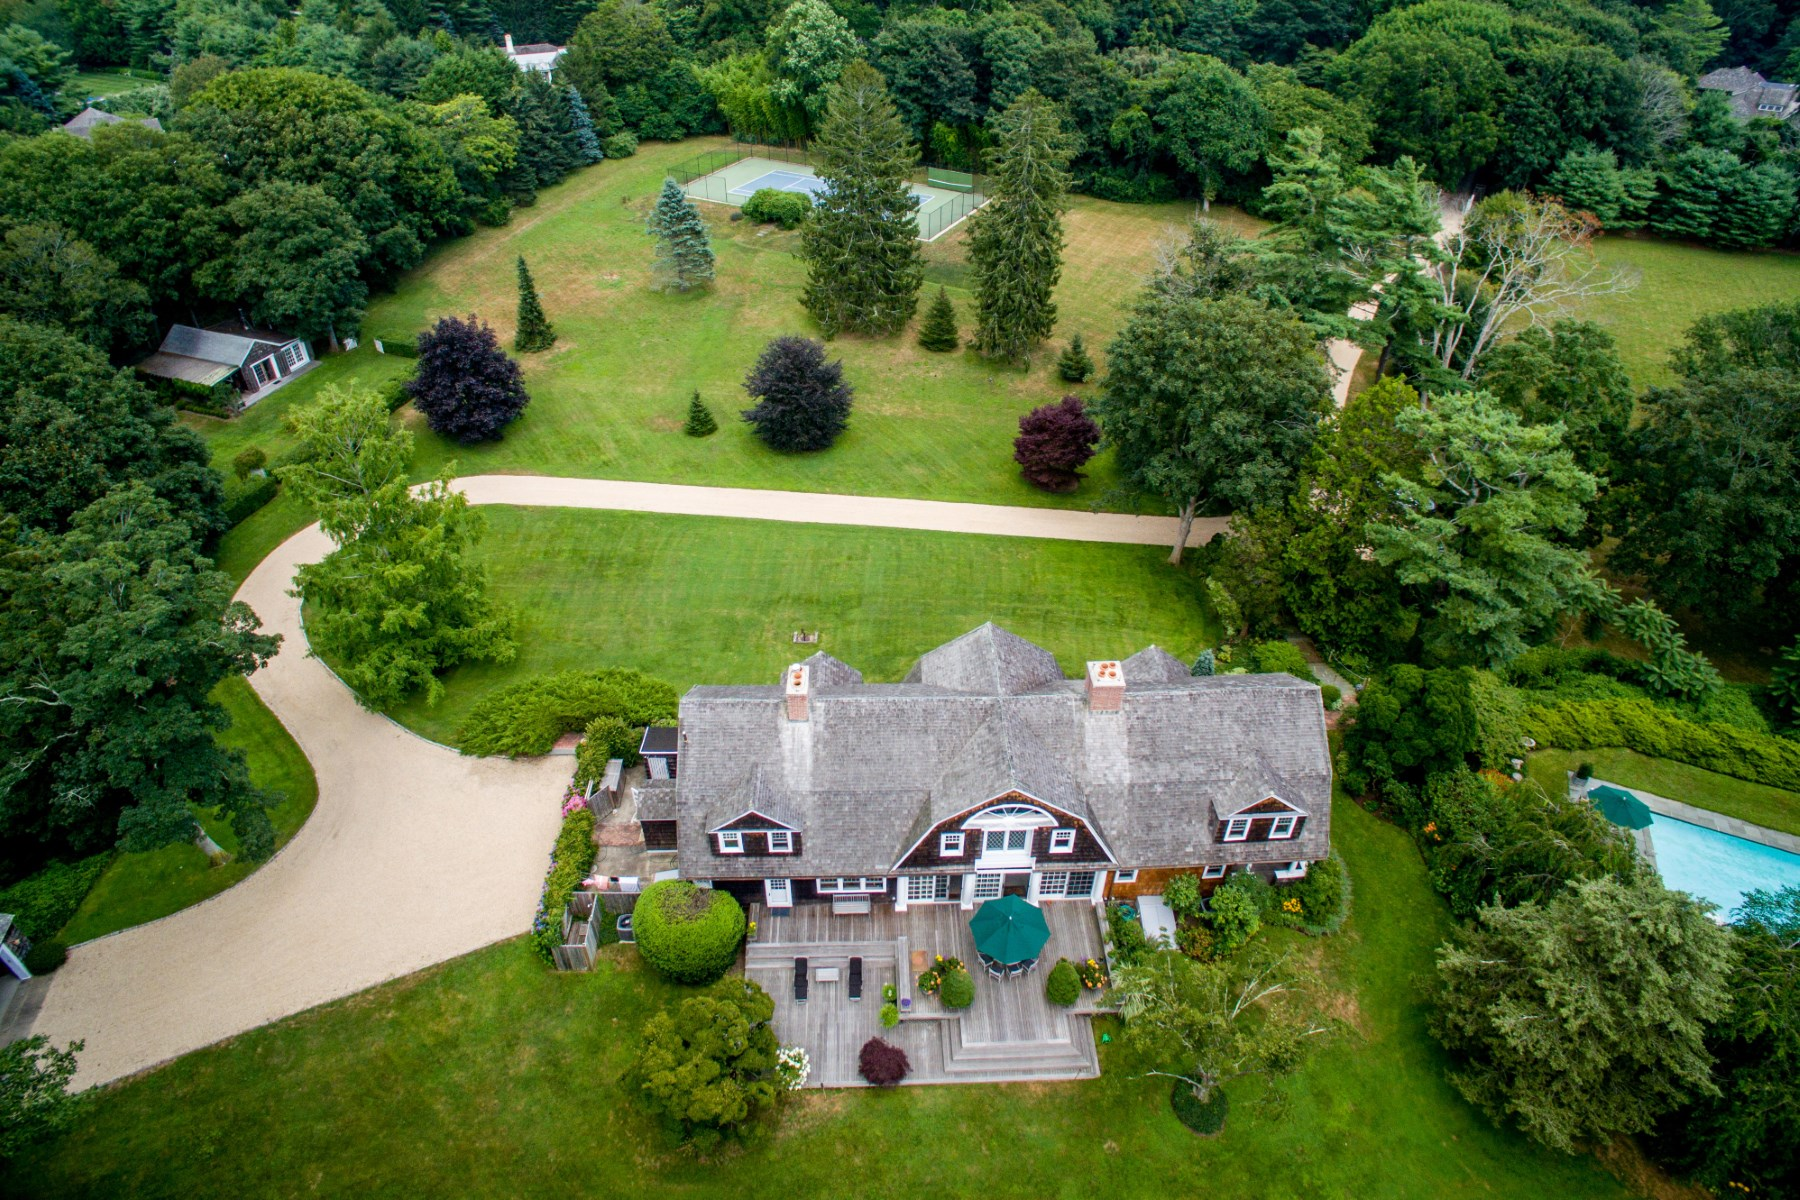 Single Family Home for Sale at Magnificent Pastoral Compound East Hampton, New York 11937 United States